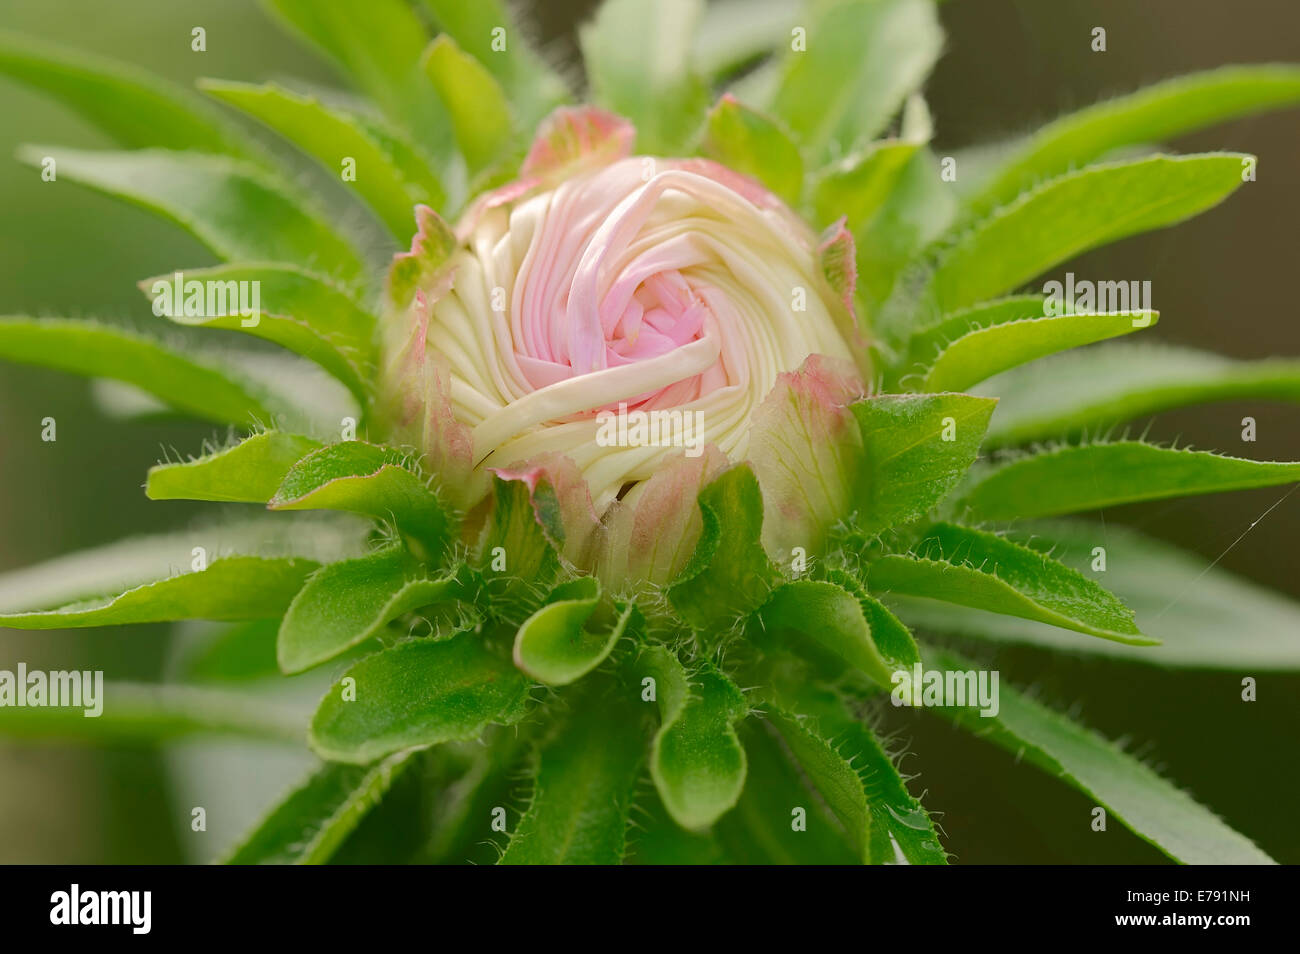 Annual Aster (Callistephus chinensis, Aster chinensis), flower bud, Germany - Stock Image